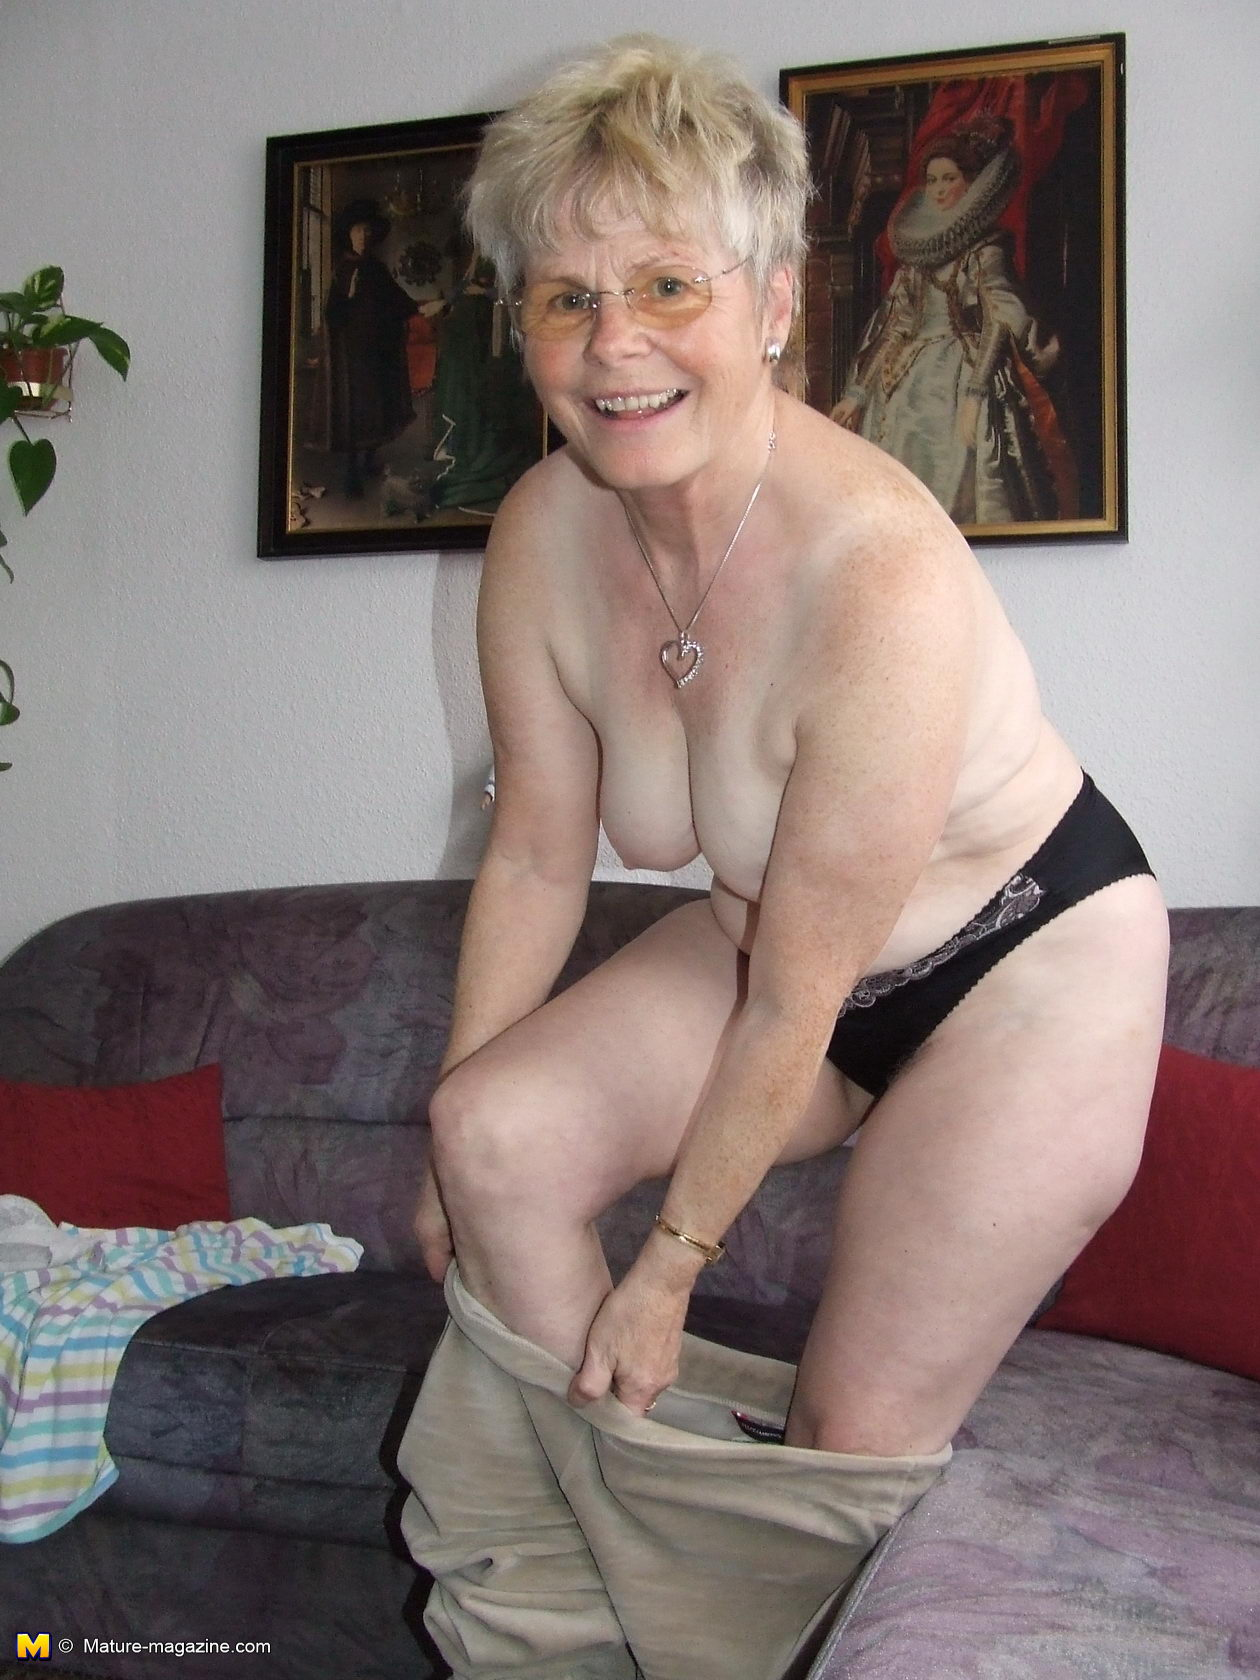 Older Lady In Nature Large Stocking Porn Outdoor Cornellia mature magazine naughty older lady showing off her naked